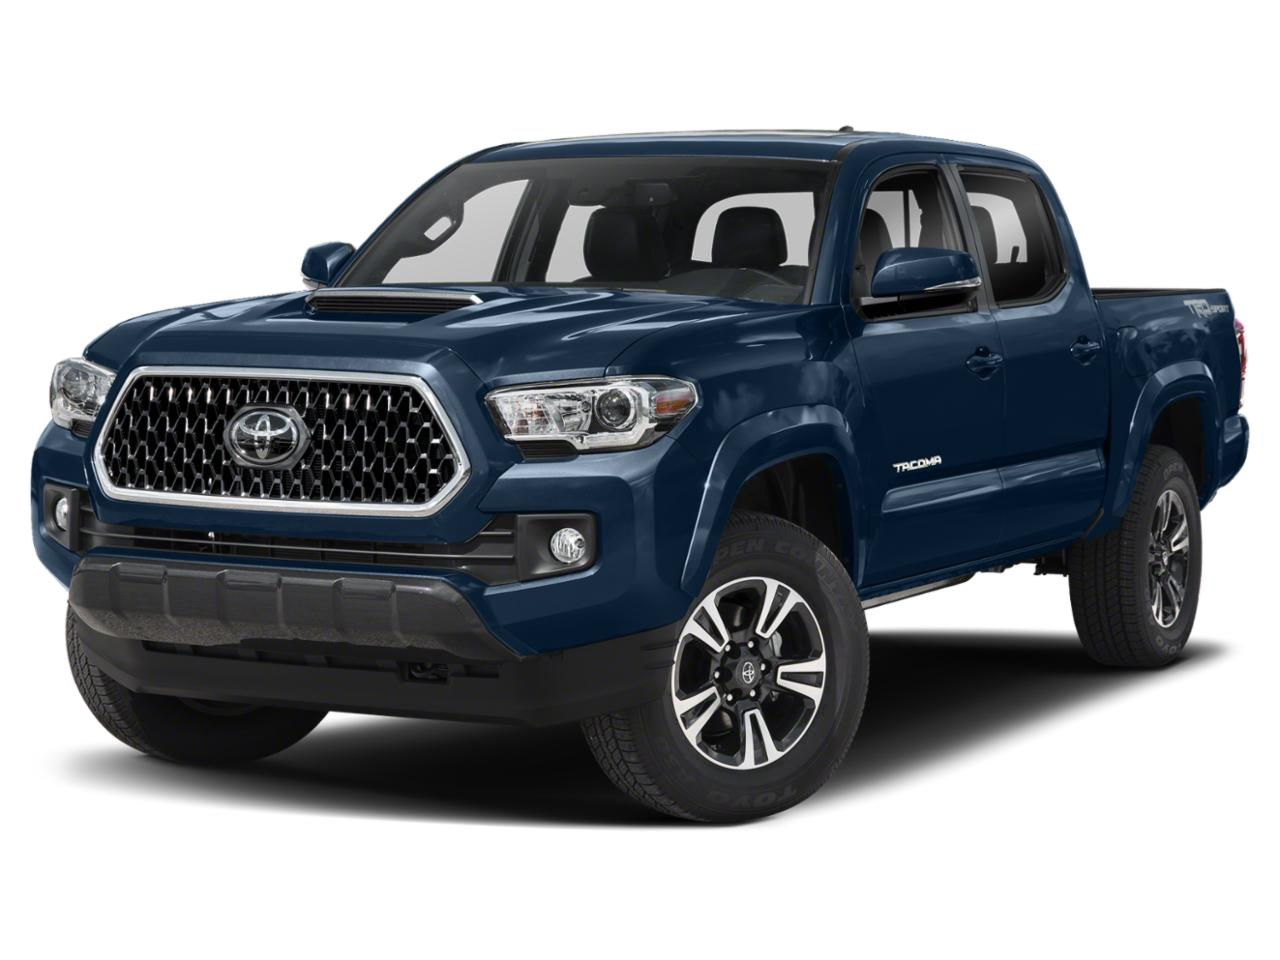 2019 Toyota Tacoma 2WD Vehicle Photo in El Paso, TX 79922